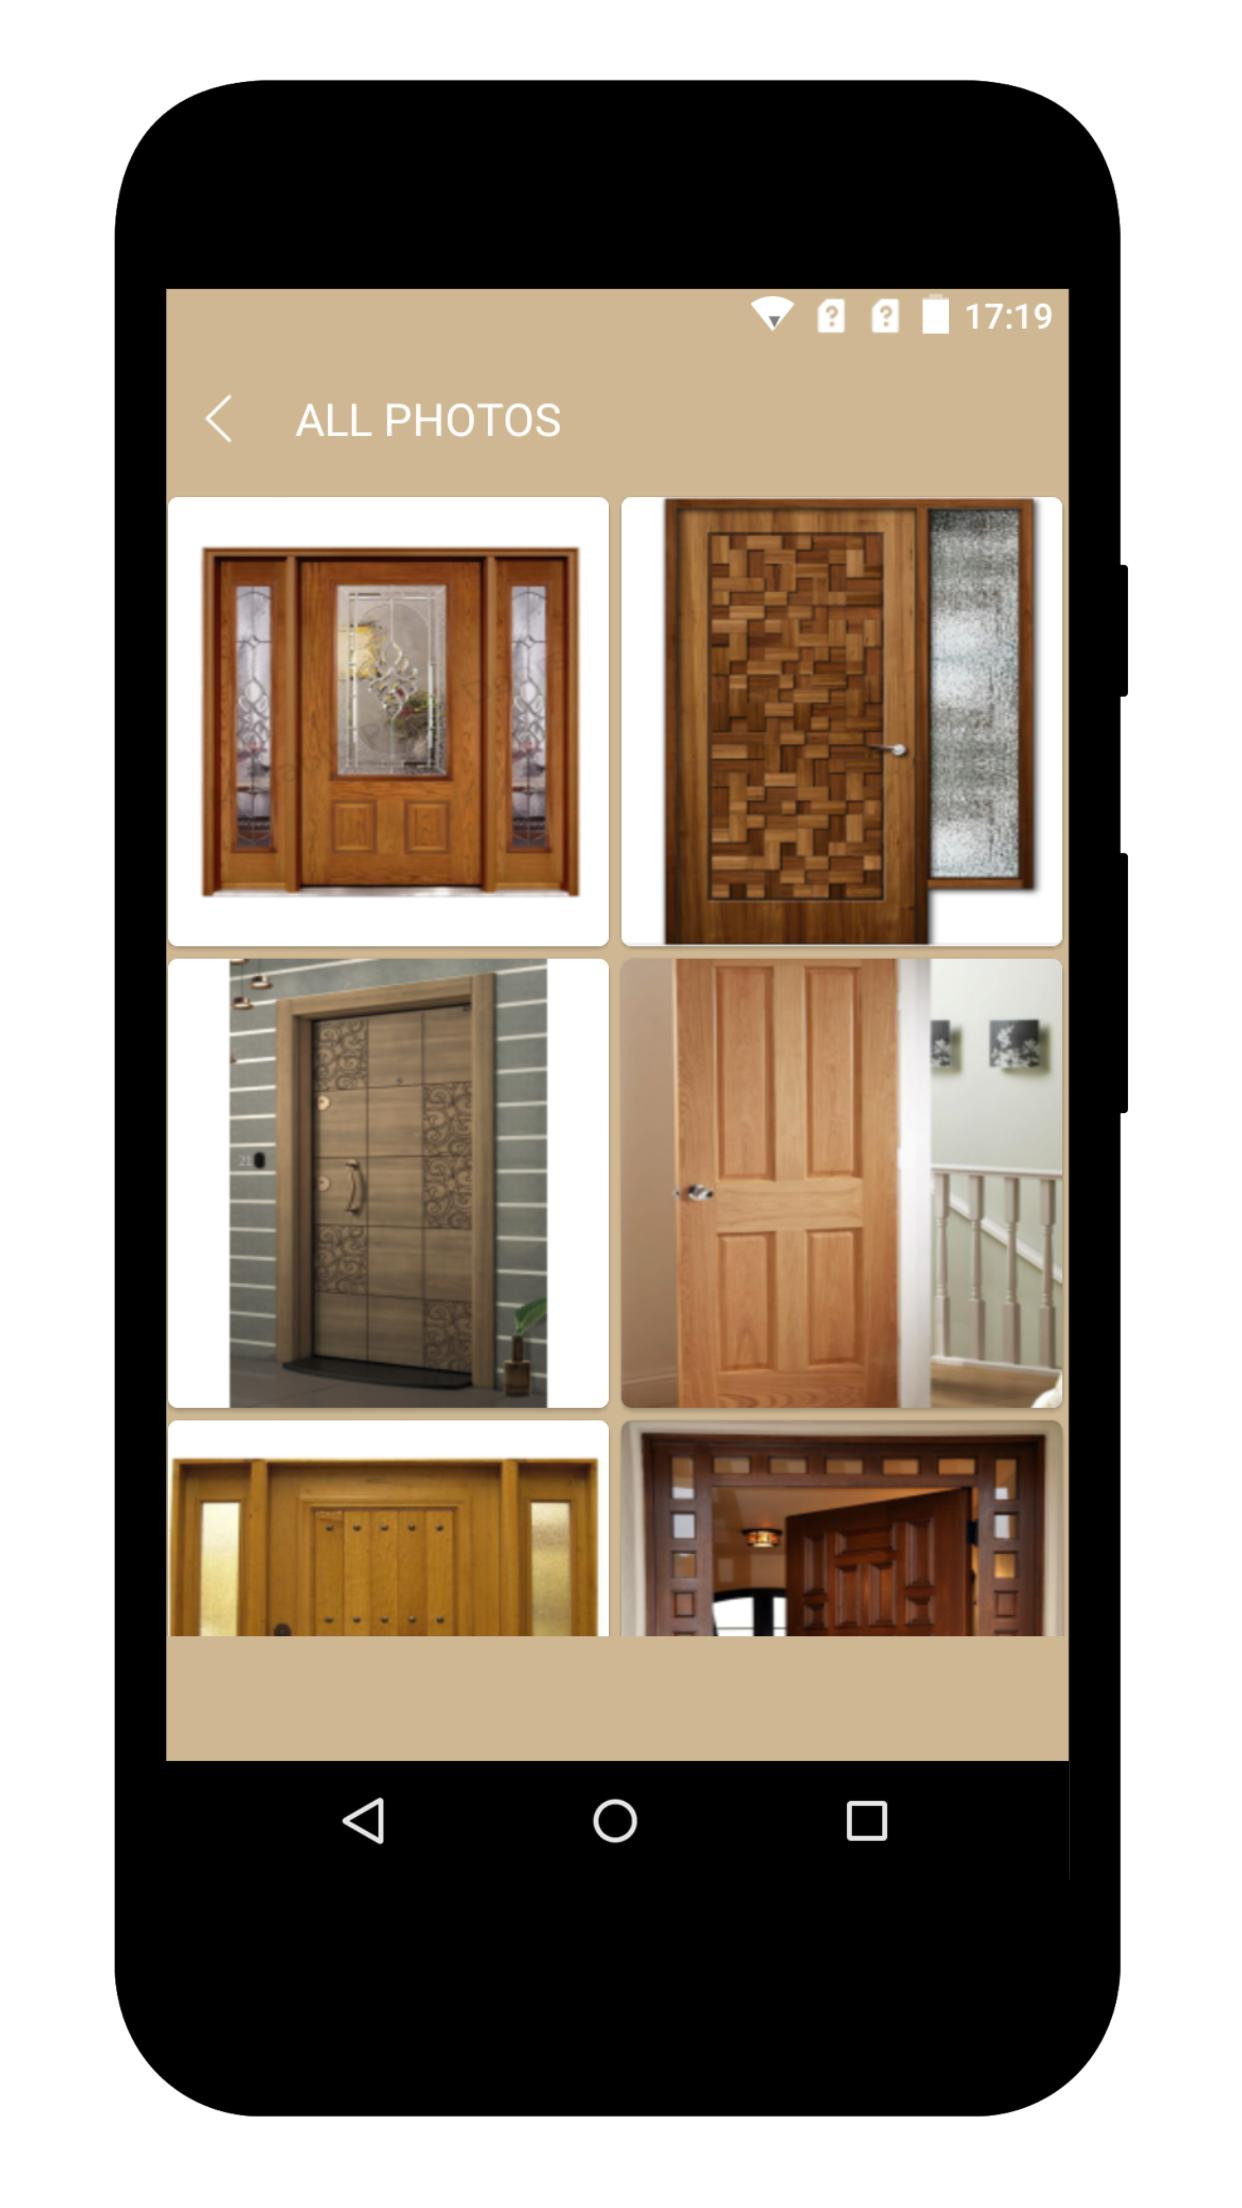 House Door Design Indian Style Awesome House Door Design Indian Style for android Apk Download